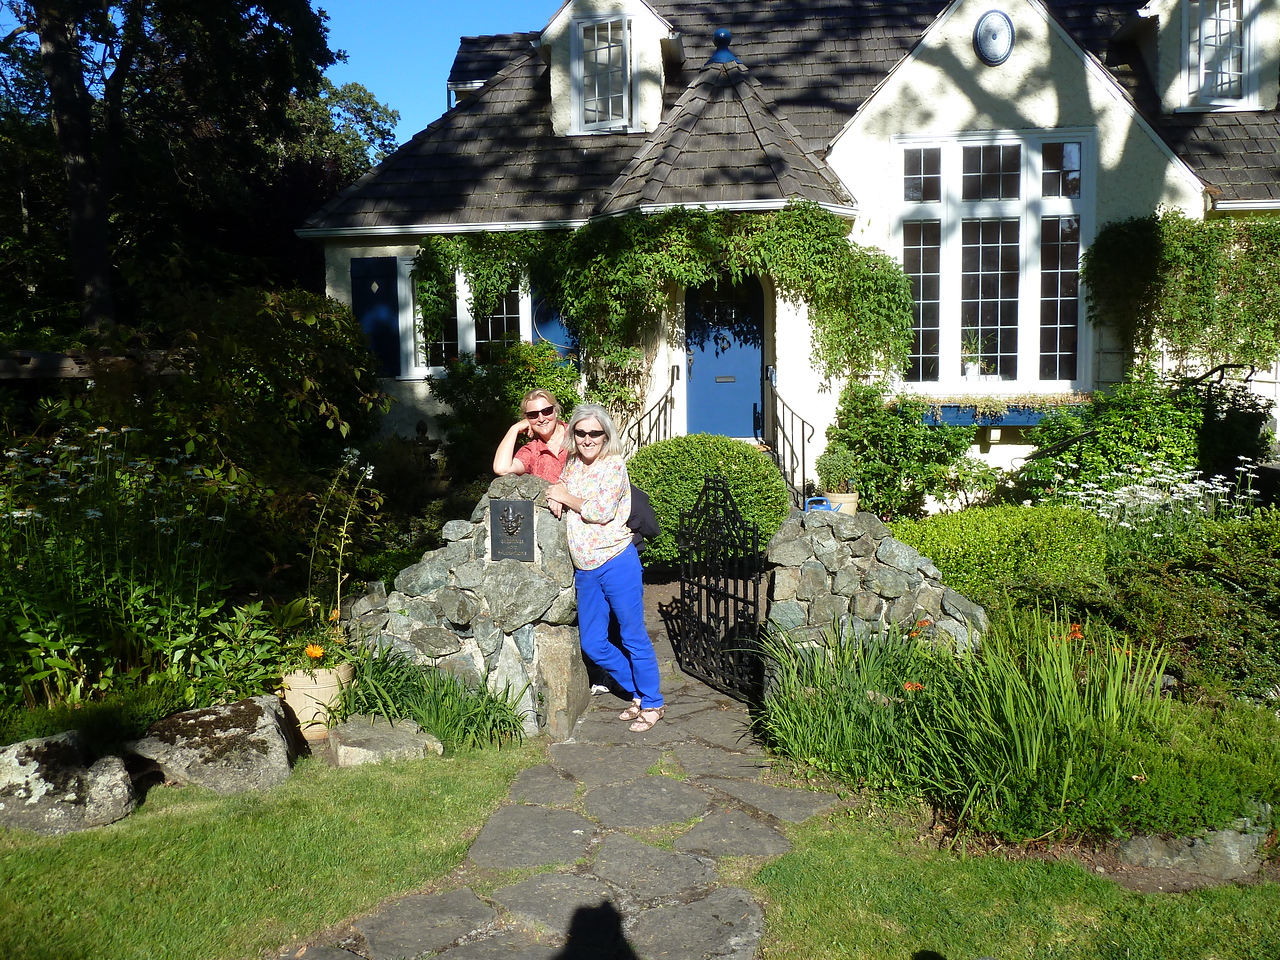 With Moira in front of her lovely home in Victoria, BC, Canada.